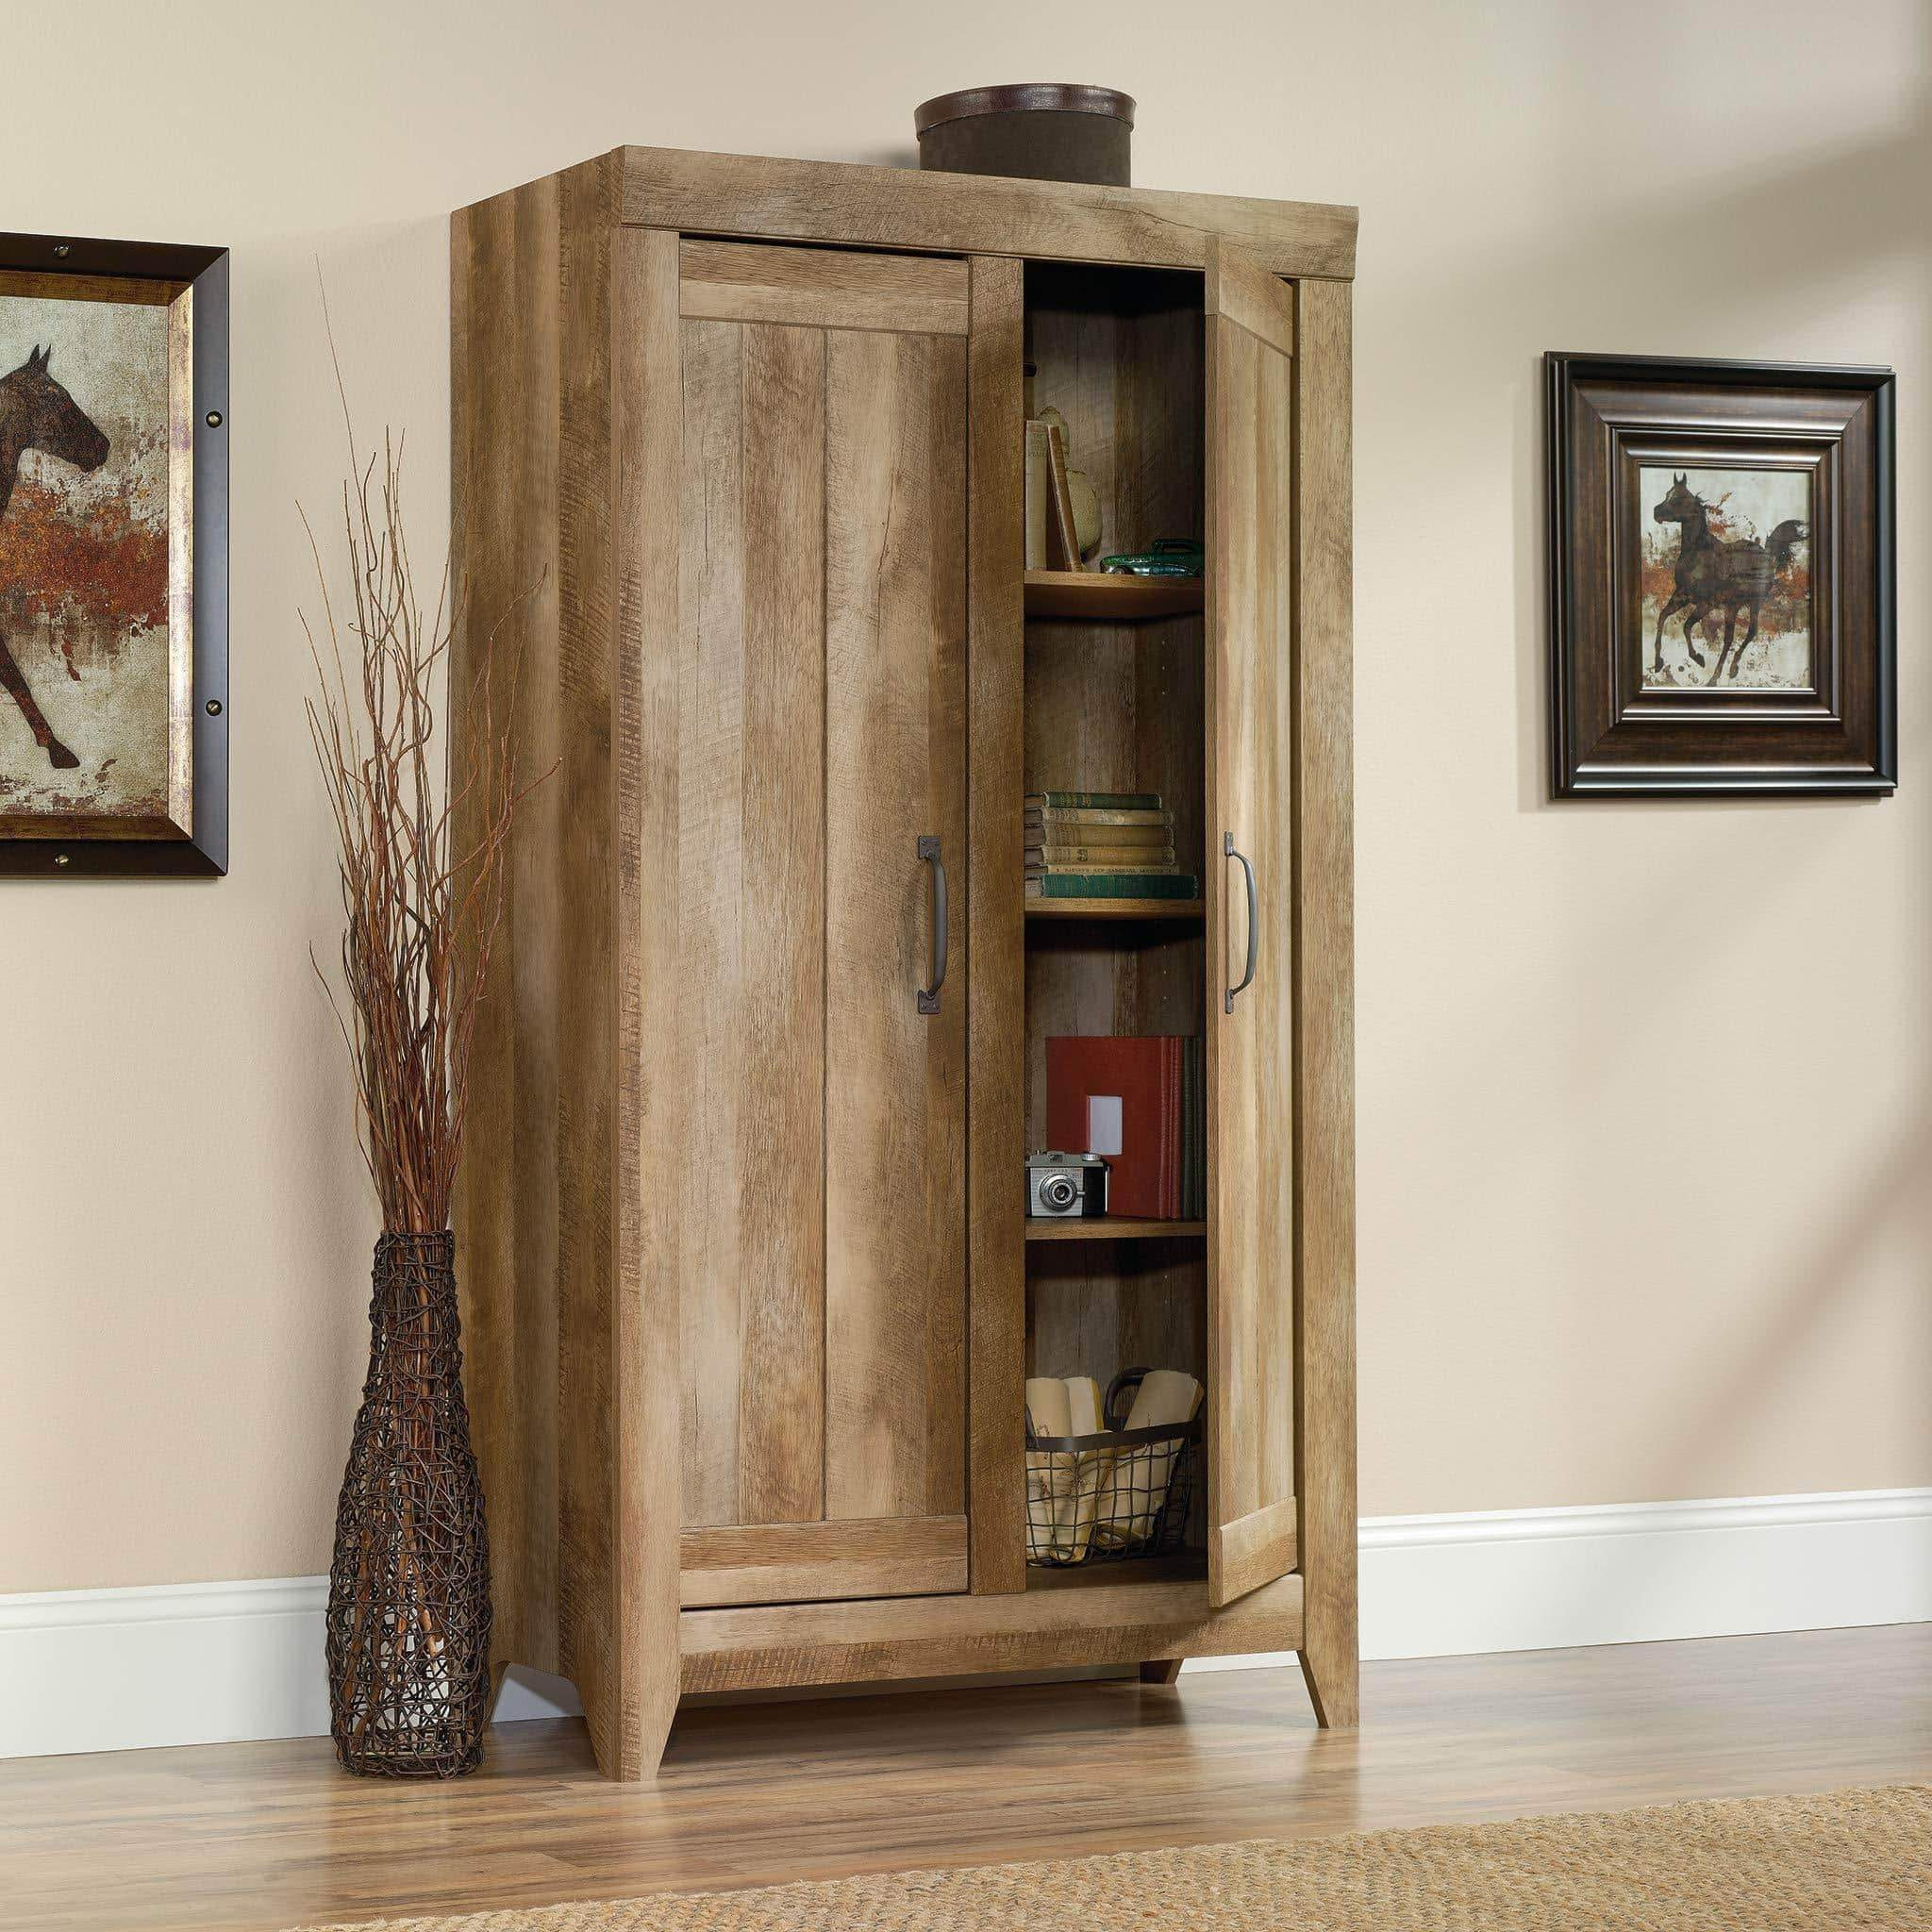 Discover the best sauder 418141 adept storage wide storage cabinet l 38 94 x w 16 77 x h 70 98 craftsman oak finish